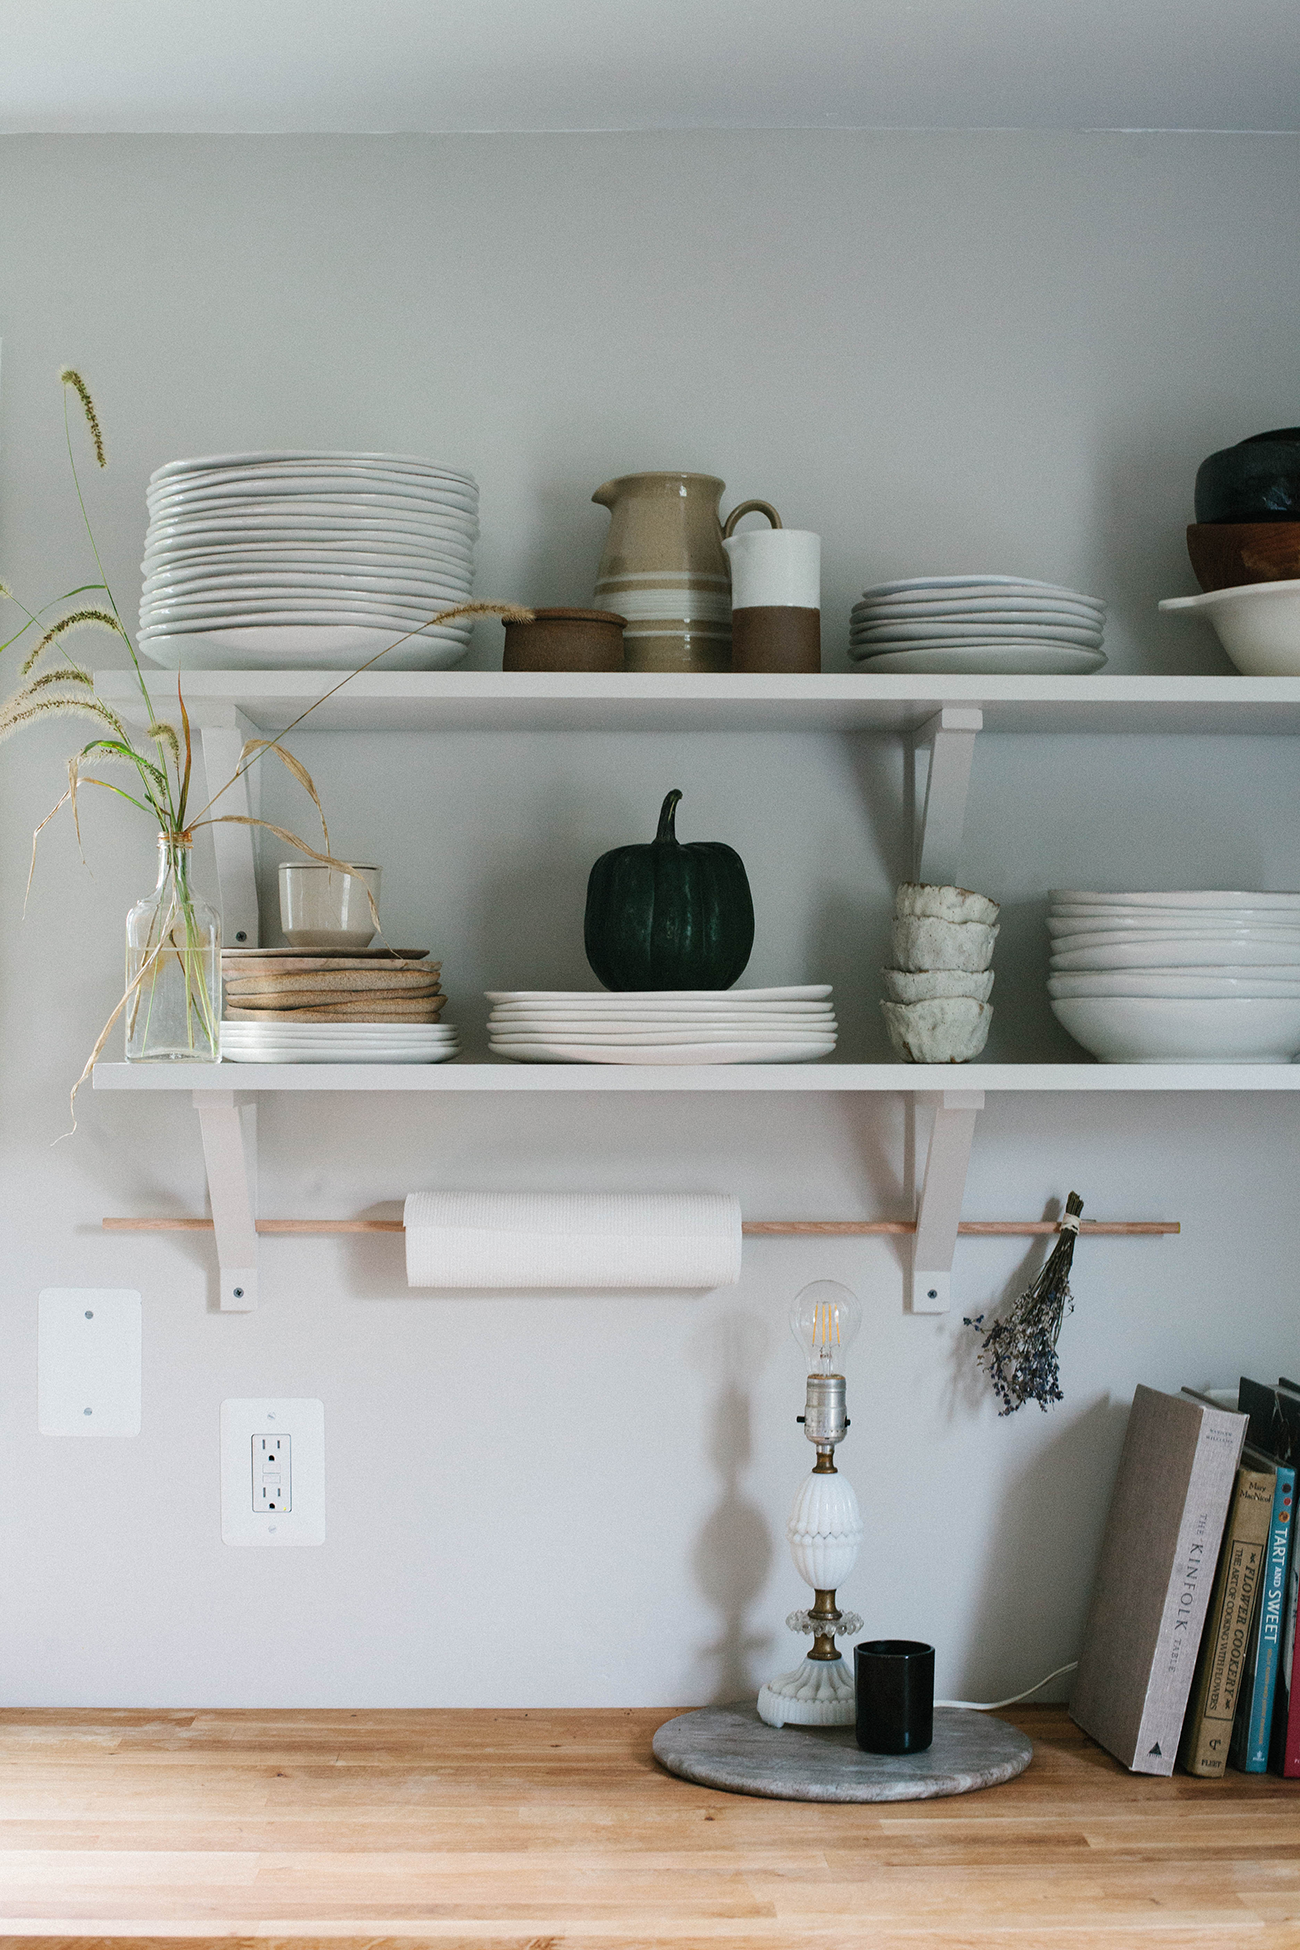 Country Kitchen Shelves How To Style Open Kitchen Shelves For Autumn Kitchen Culinary